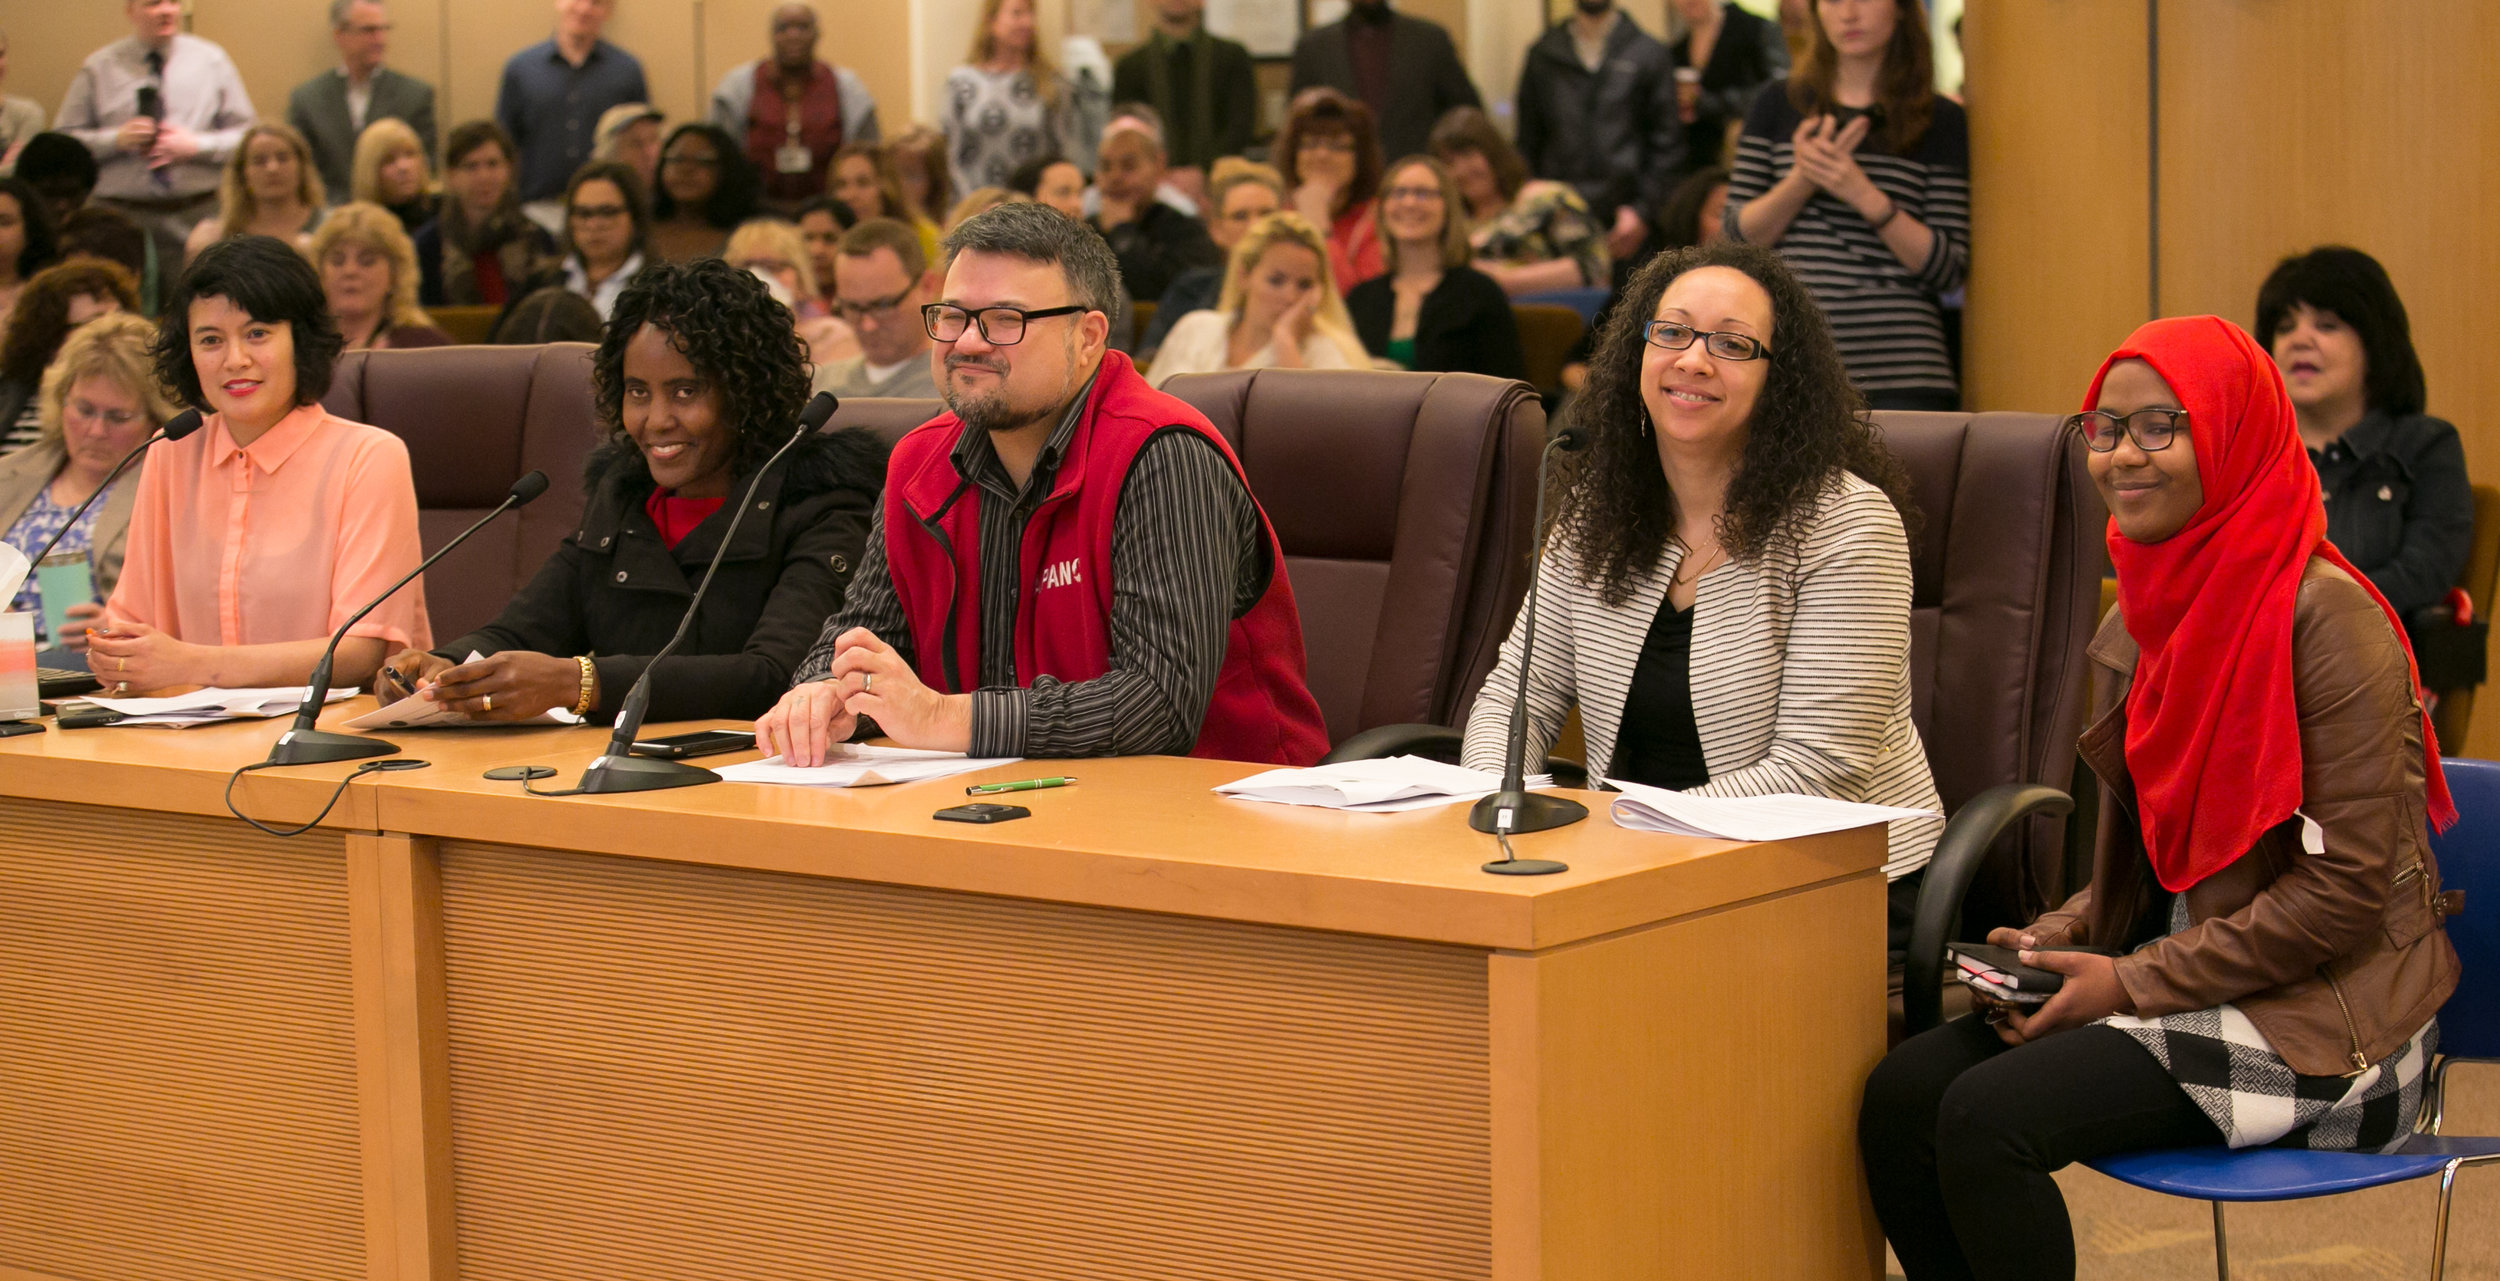 Rachael Banks (2nd from right) presenting on the work of the Community Health Improvement Plan along with members of Community Powered Change at an April 5th Multnomah County Board meeting. At the same meeting the Board of Commissioners made a proclamation on the CHIP process.